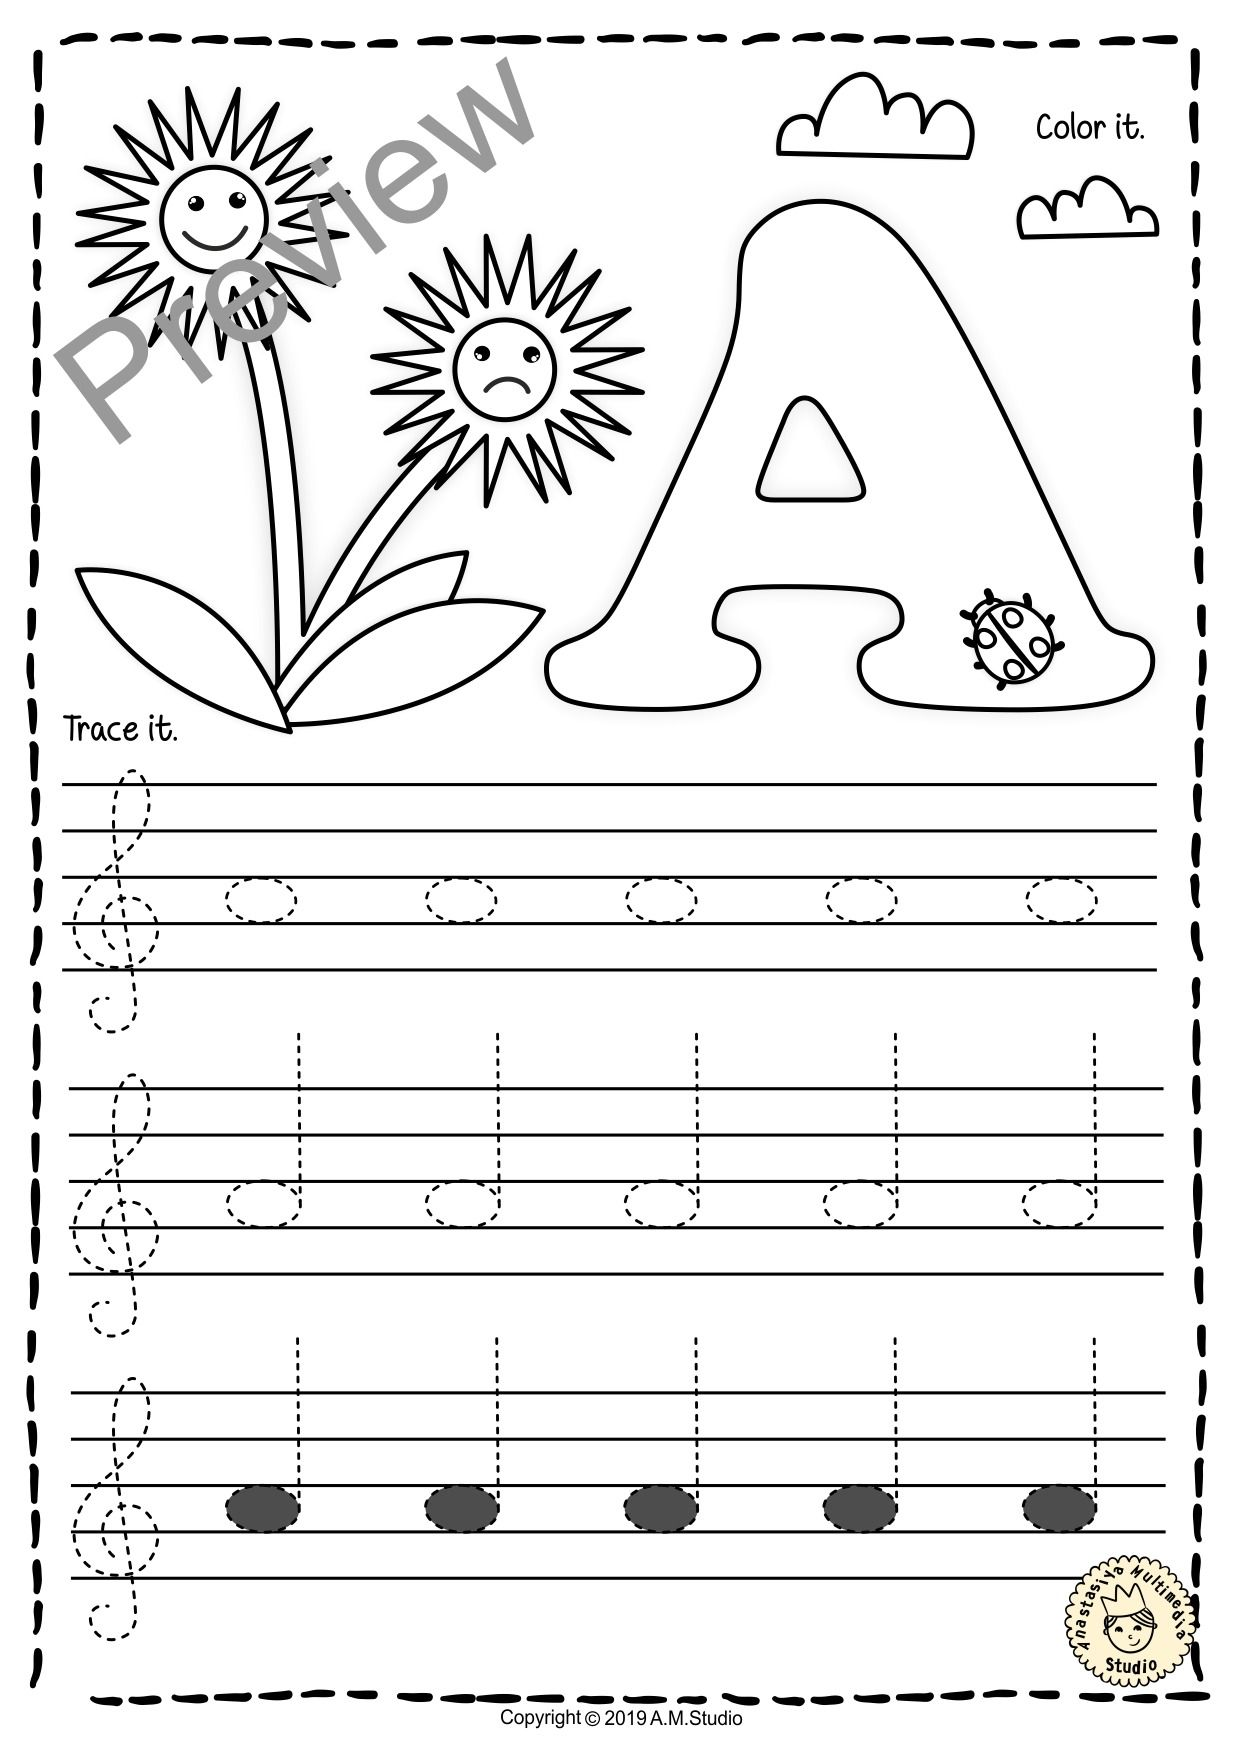 Treble Clef Tracing Music Notes Worksheets For Spring